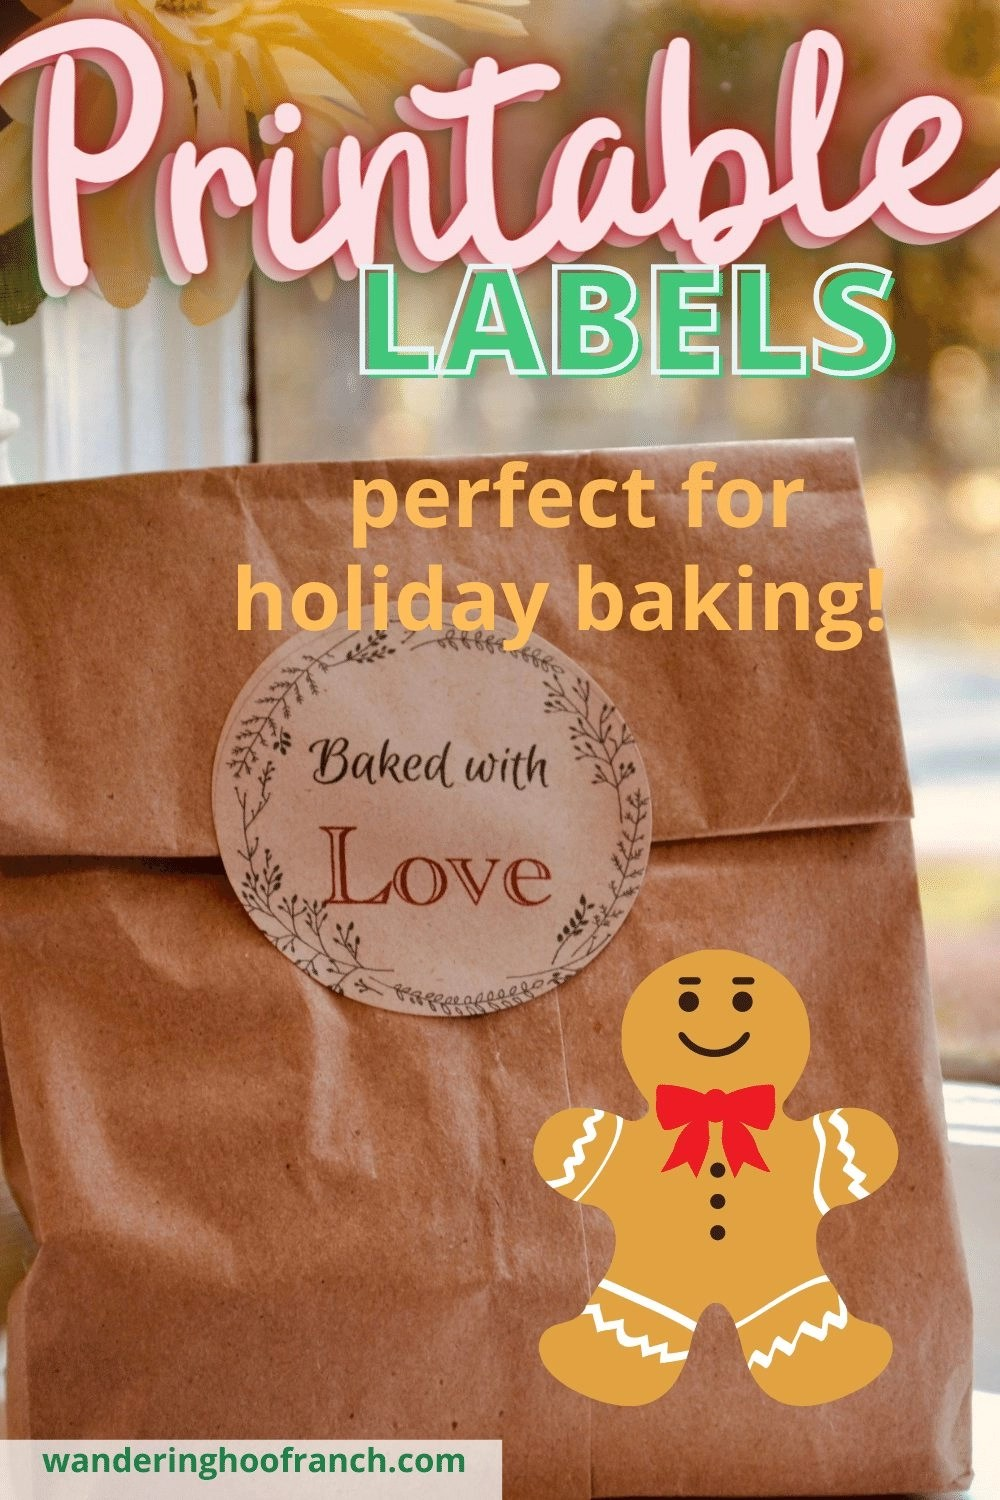 free printable labels perfect for holiday baking!